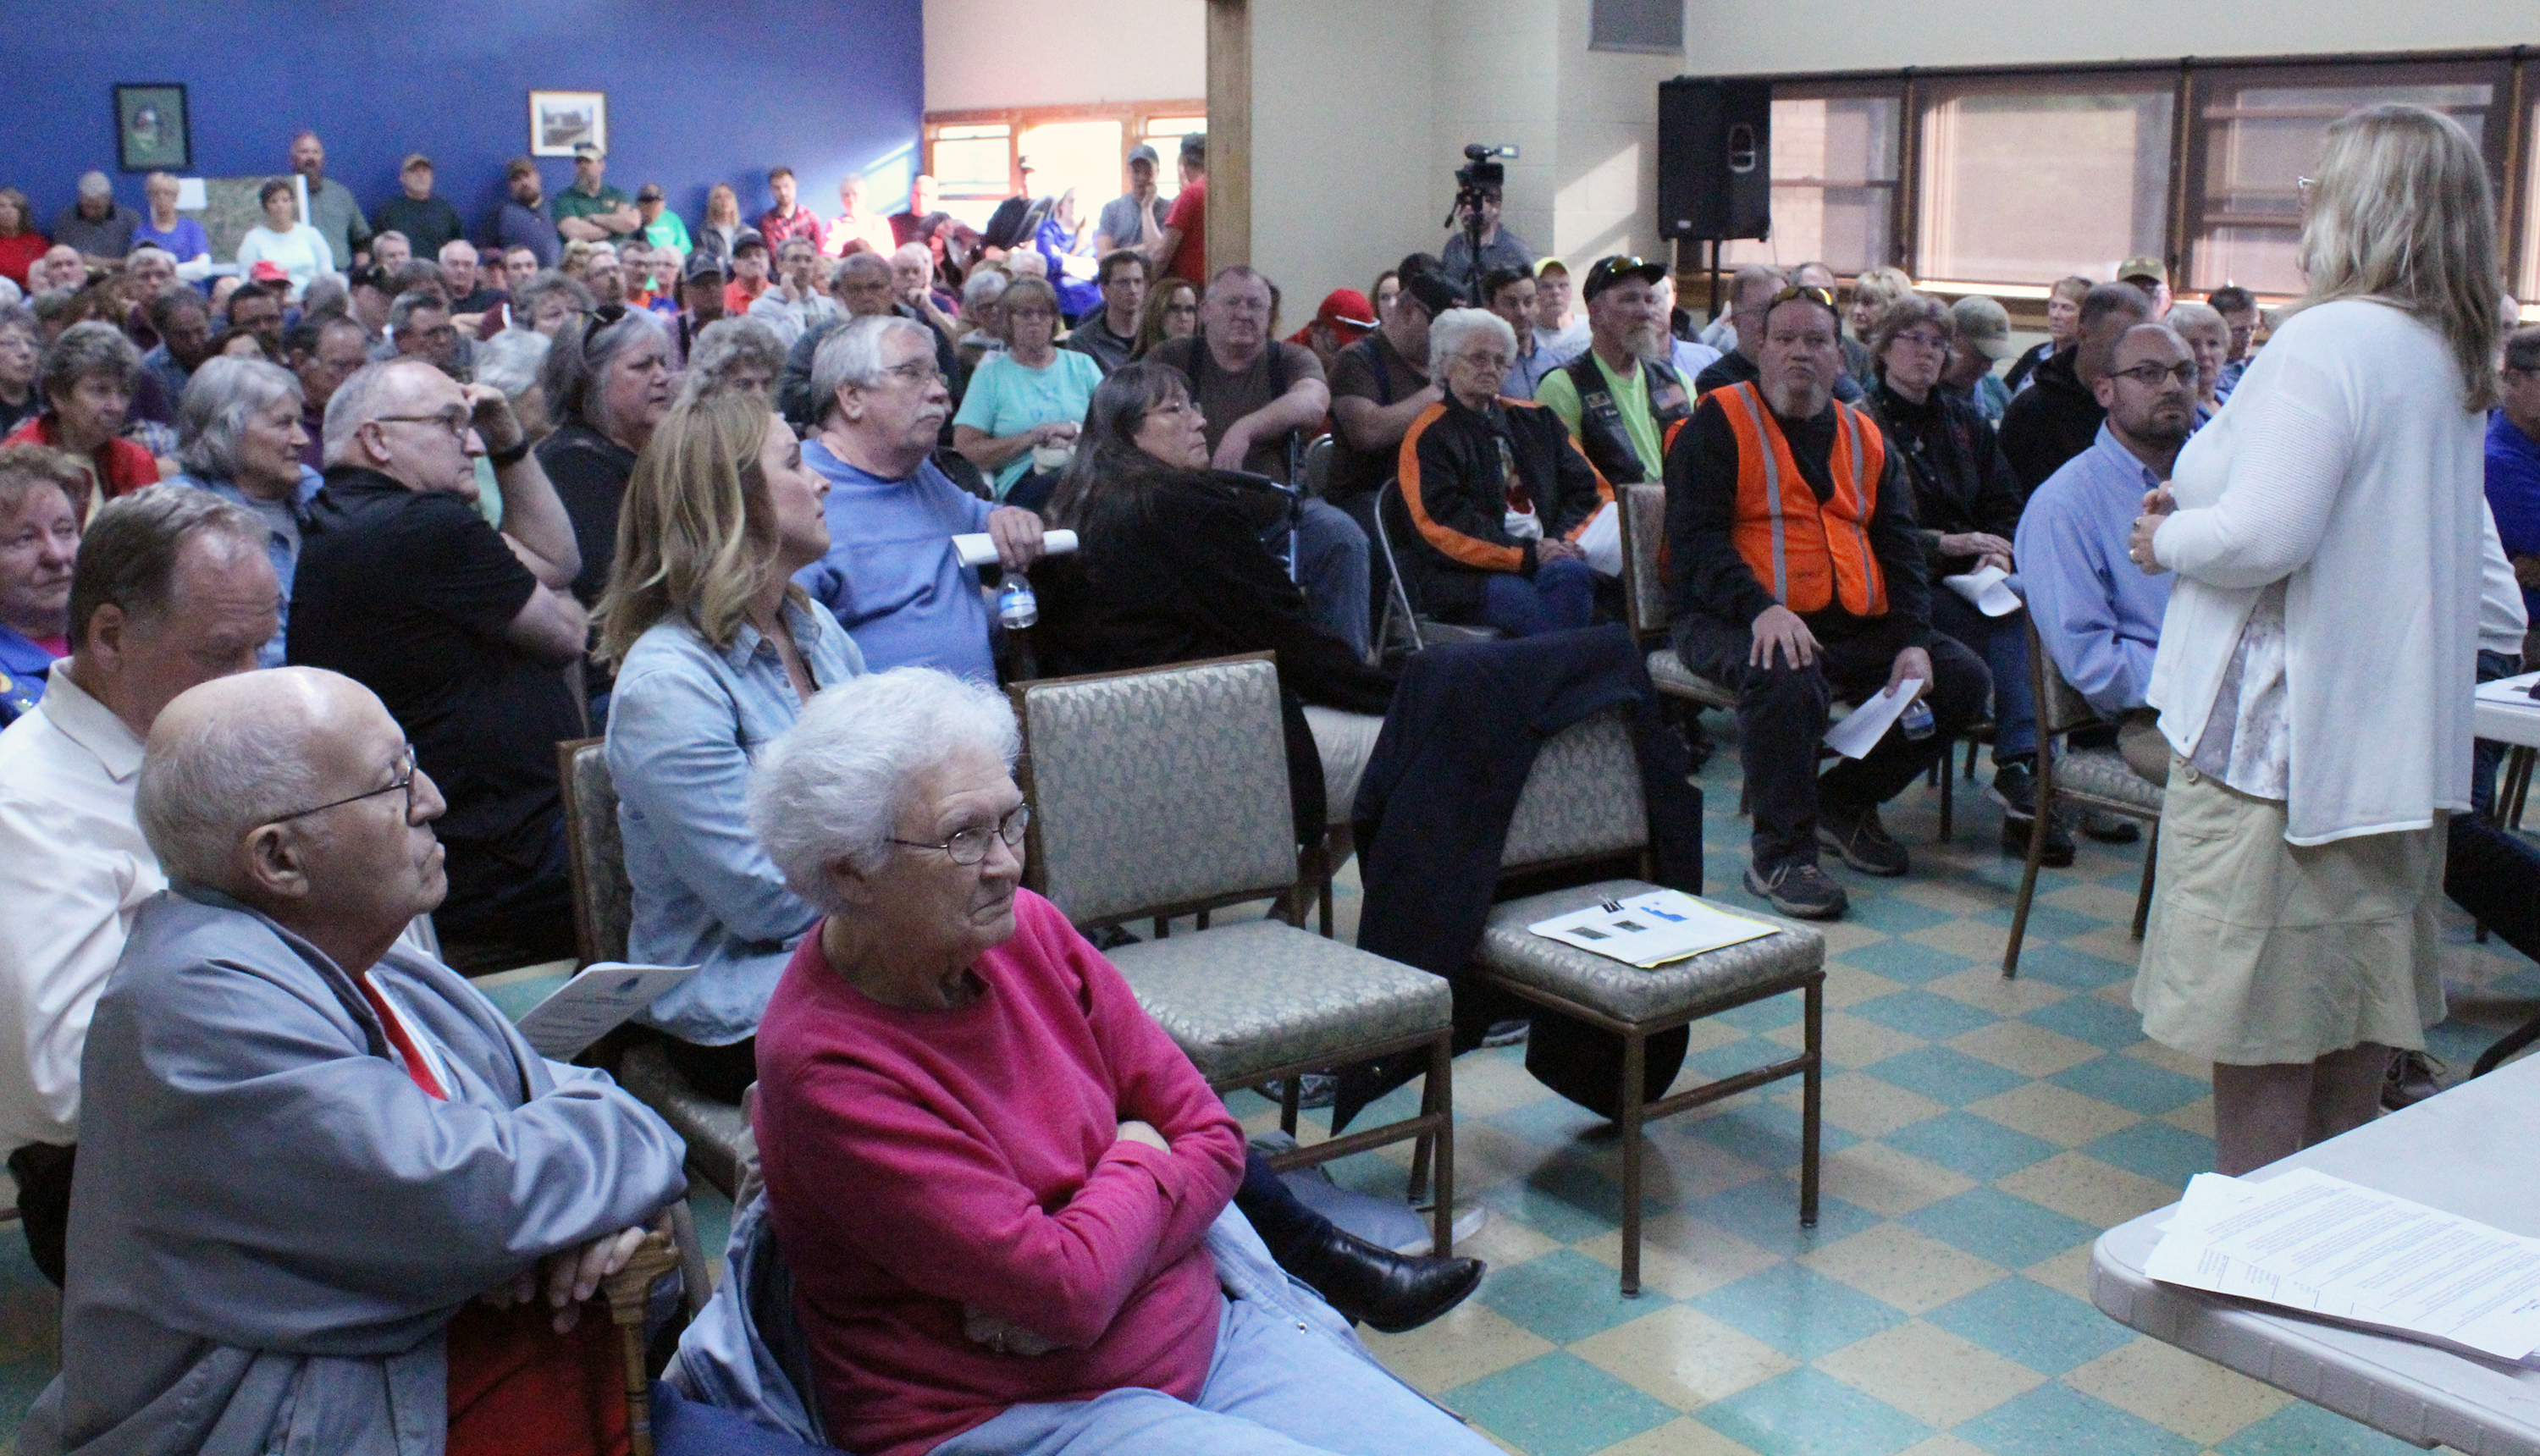 Indiana wabash county lagro - Dawn Kroh Trail Developer From Green 3 Fields Questions From A Standing Room Only Crowd At The Lagro Community Building On Monday Night May 8